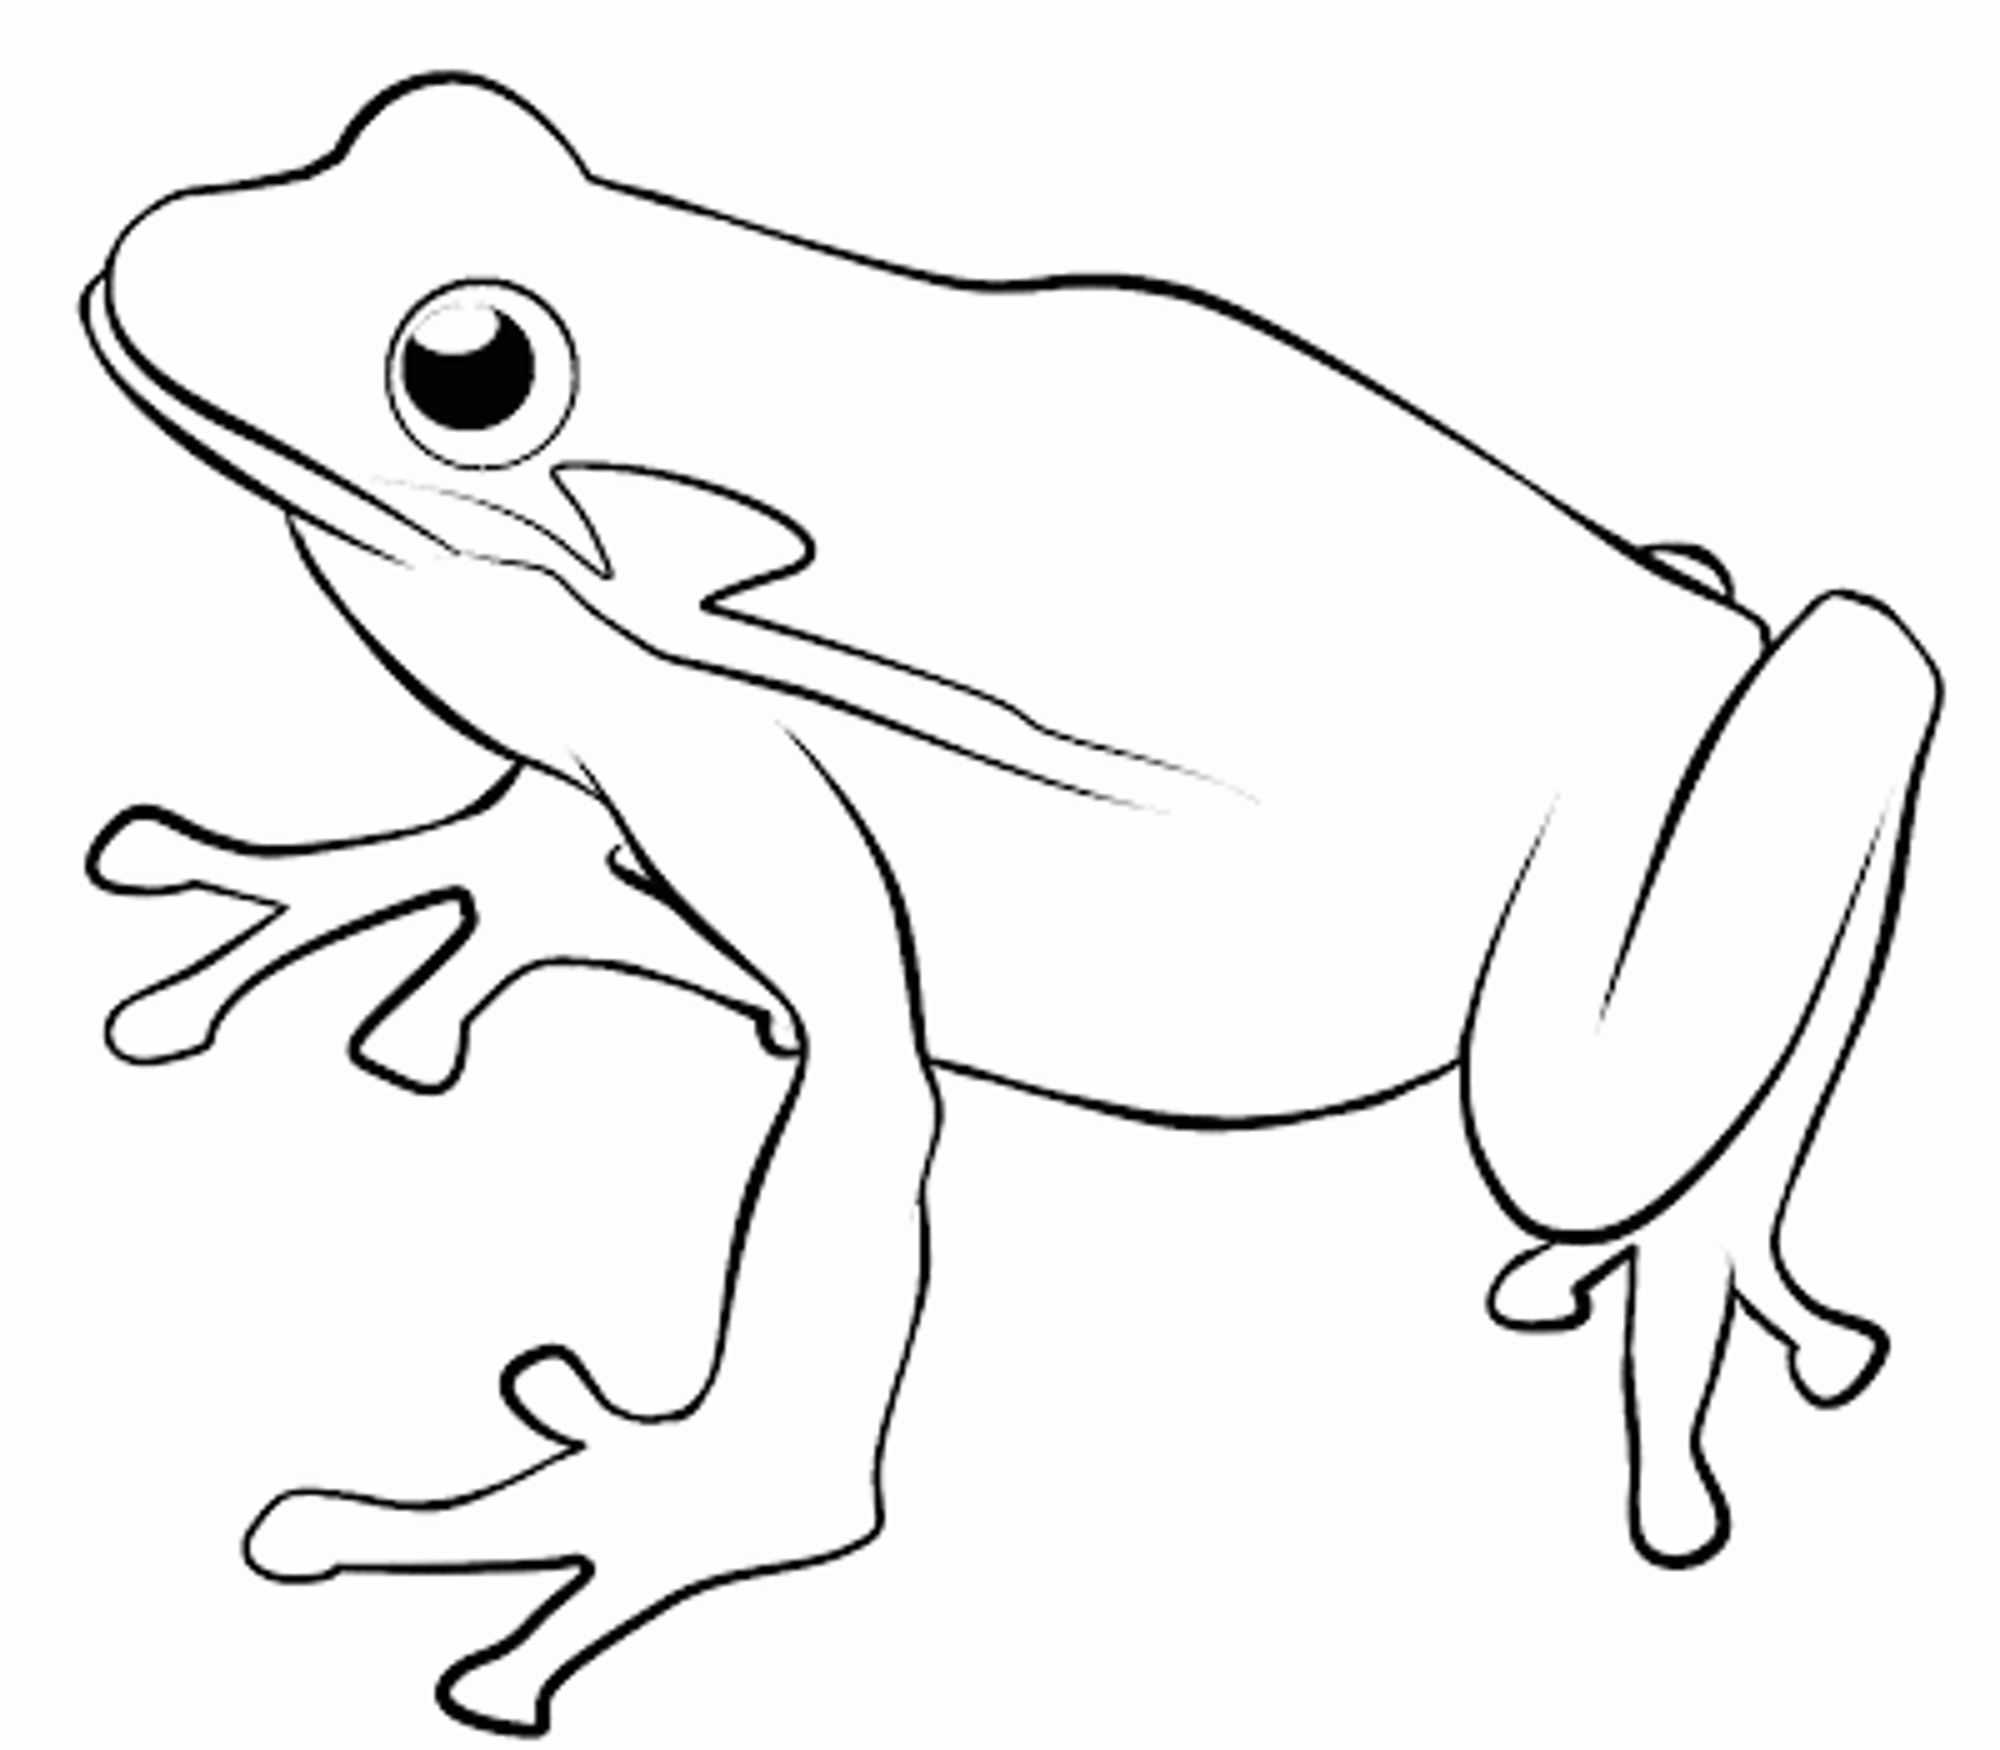 dark frog coloring pages - photo#21